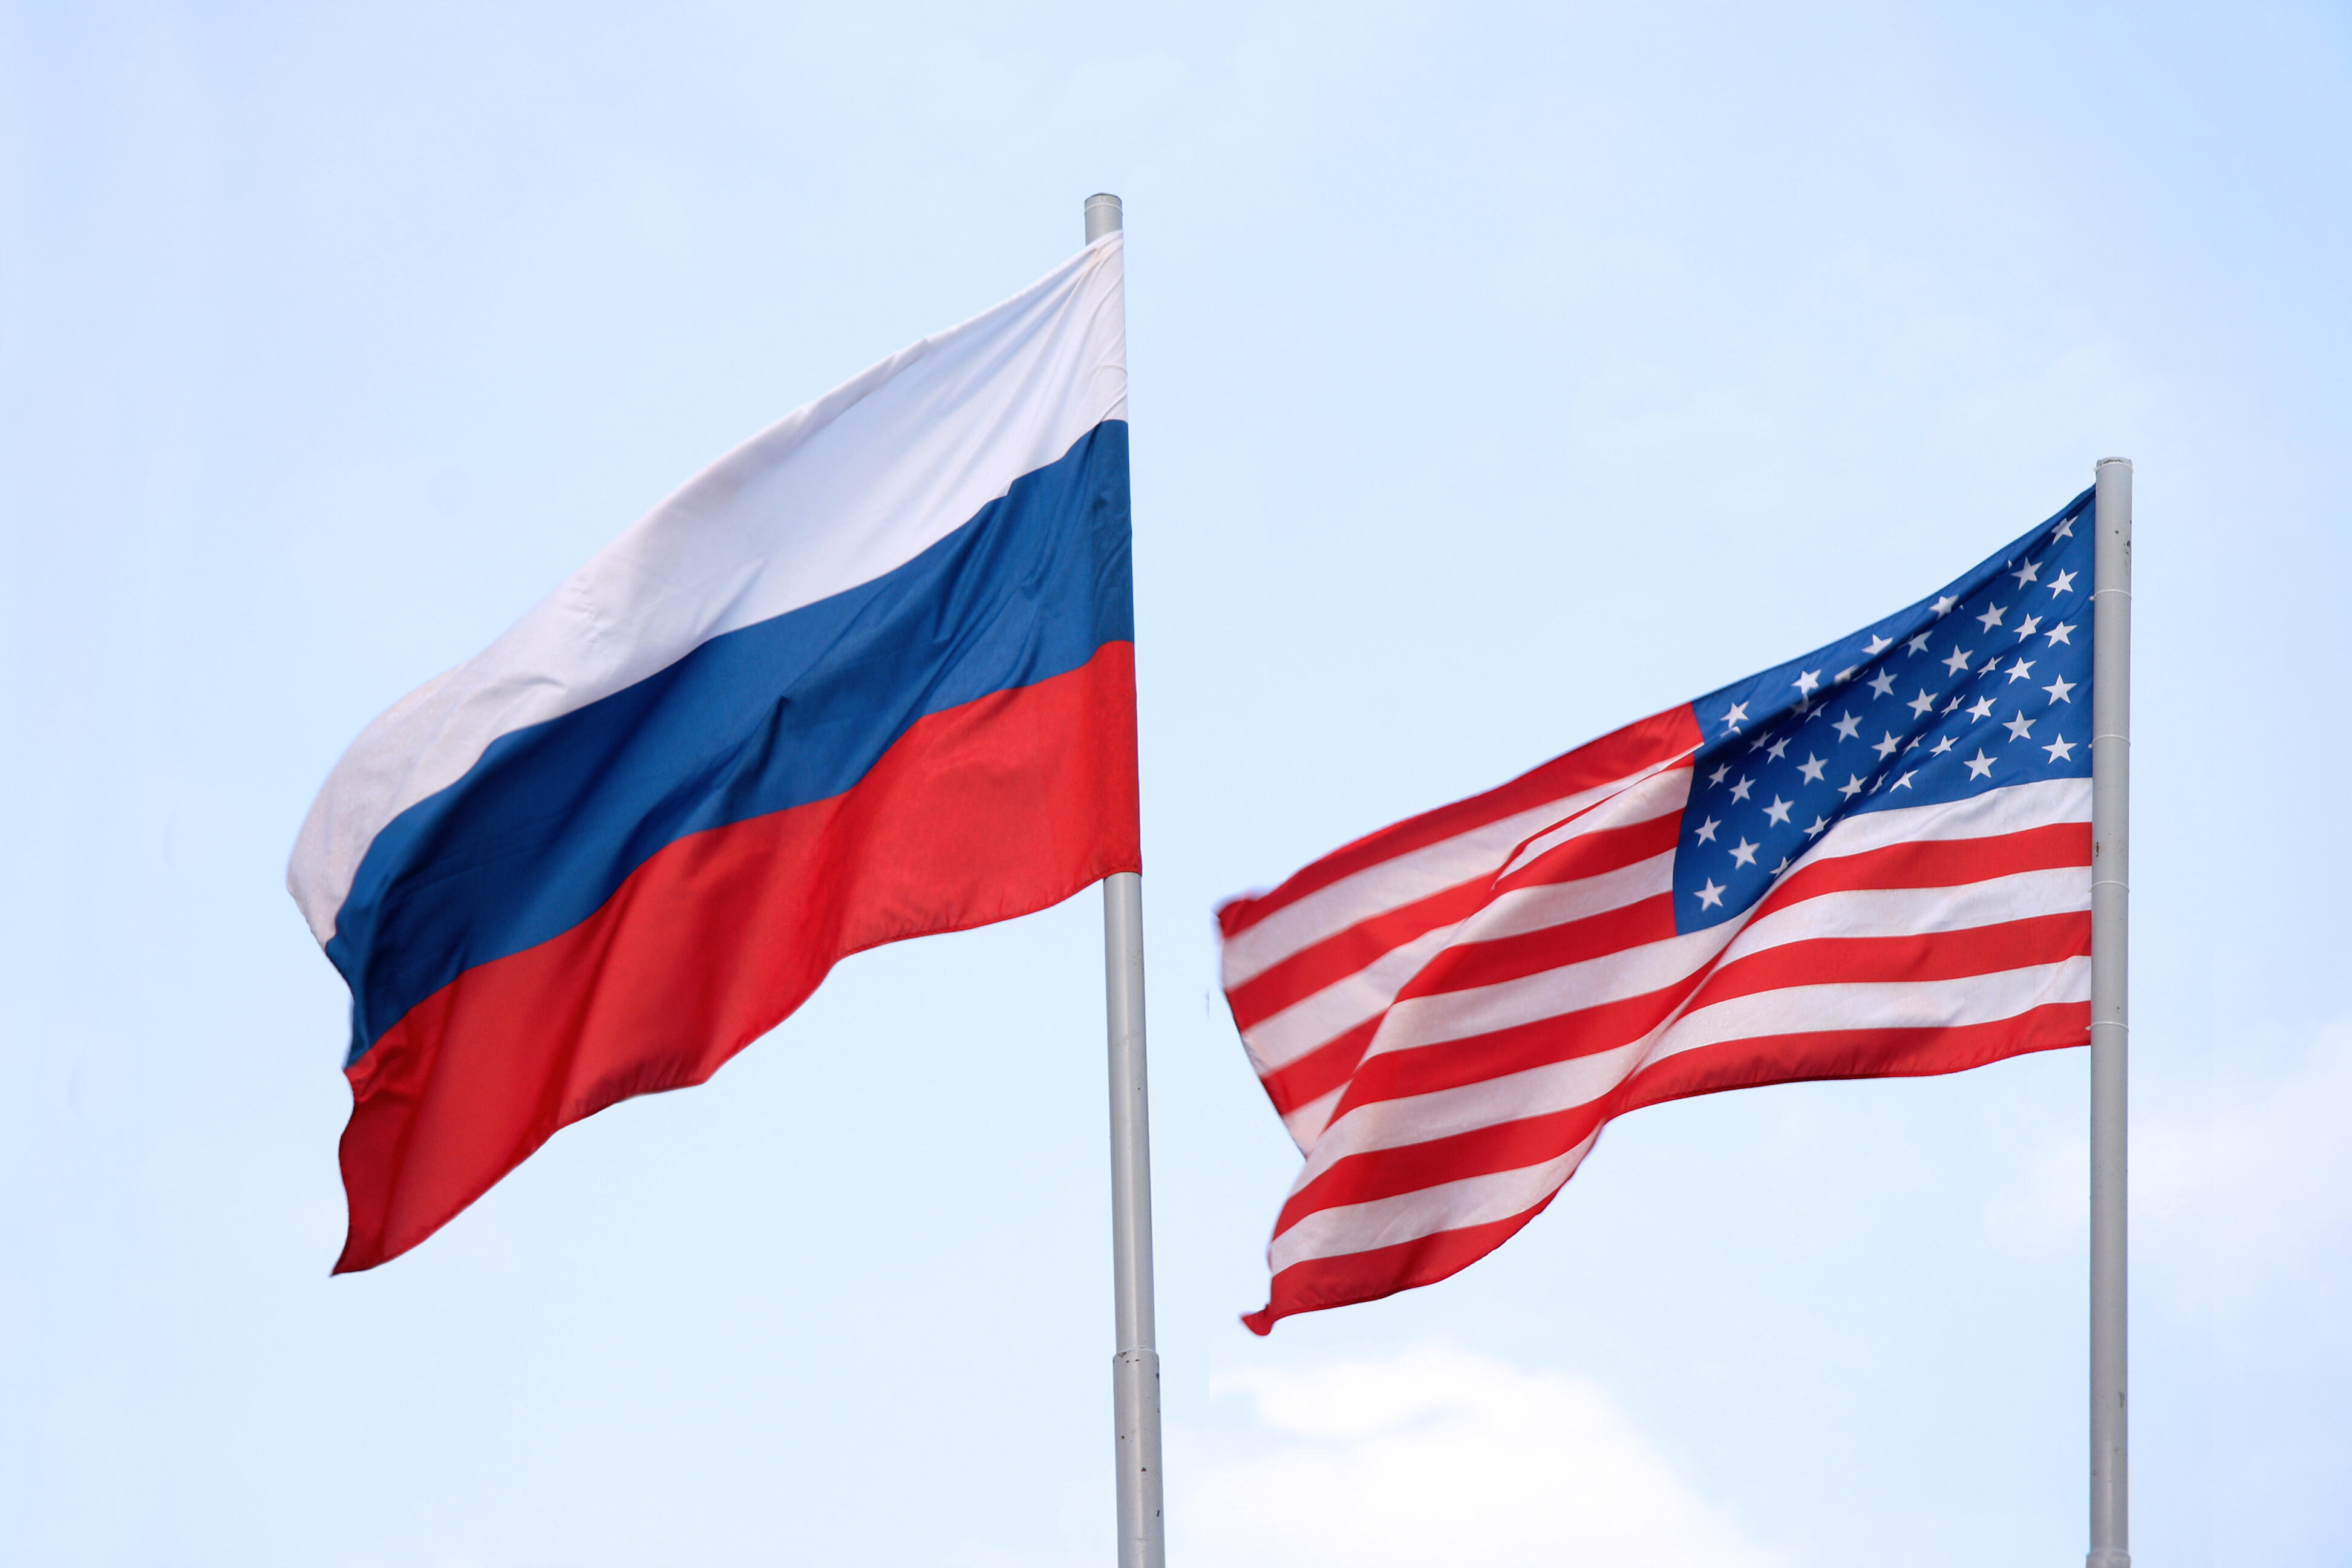 Russian and American flags flying side by side